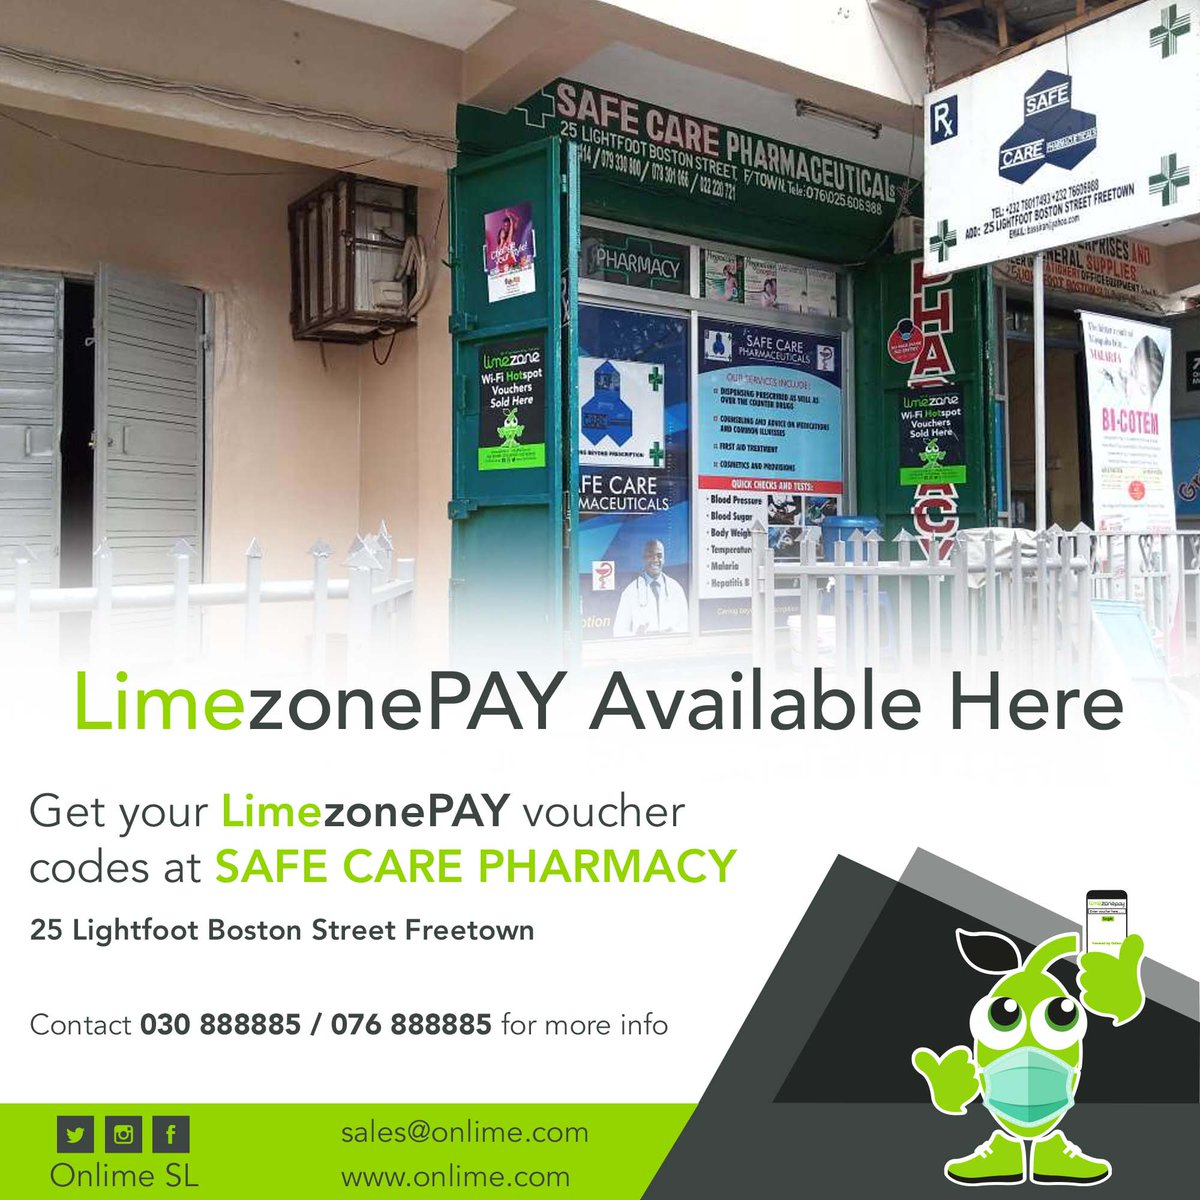 Get your LimezonePAY Voucher codes from Safe Care Pharmacy, 25 Lightfoot Boston Street, Freetown. contact +23230888885/+23276888885 for more info. #StayConnected #StaySafe #LimezonePAY #SuperfastInternet https://t.co/VxZR5begNS